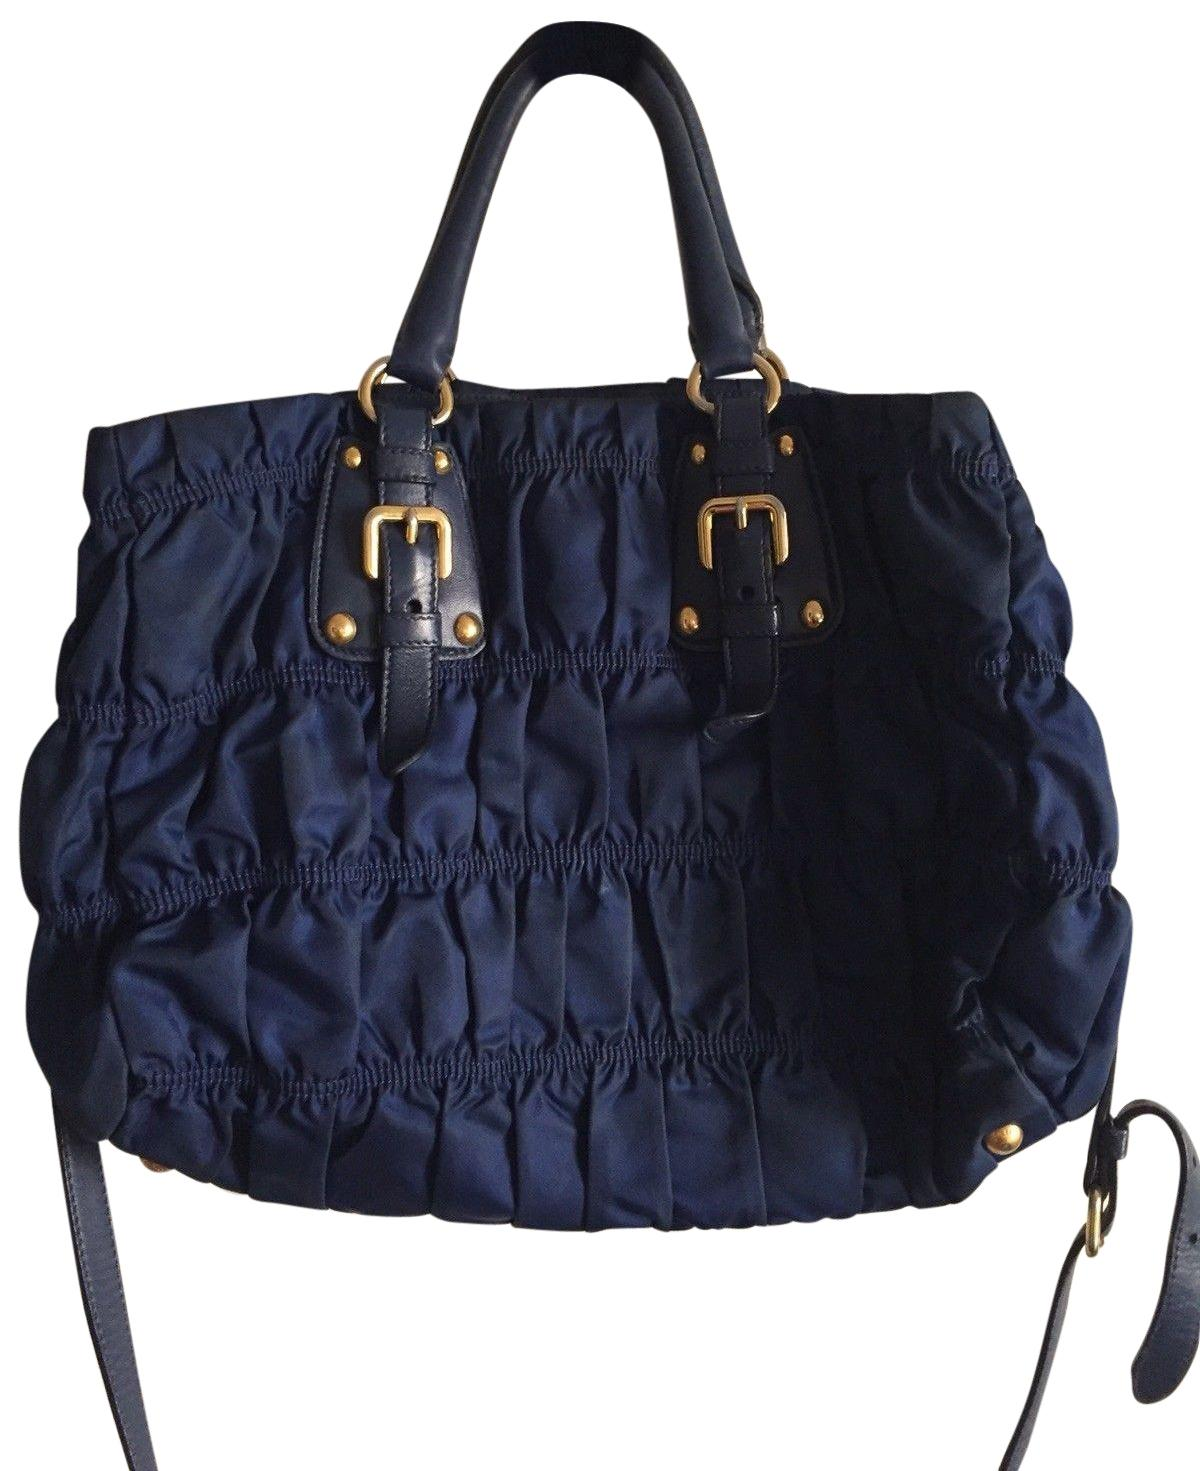 d52f61cb72db ... tote chic only glamour always ceb4d d6283; coupon for prada tessuto  gaufre handbag crossbody in nylon leather navy nylon 13c54 26649